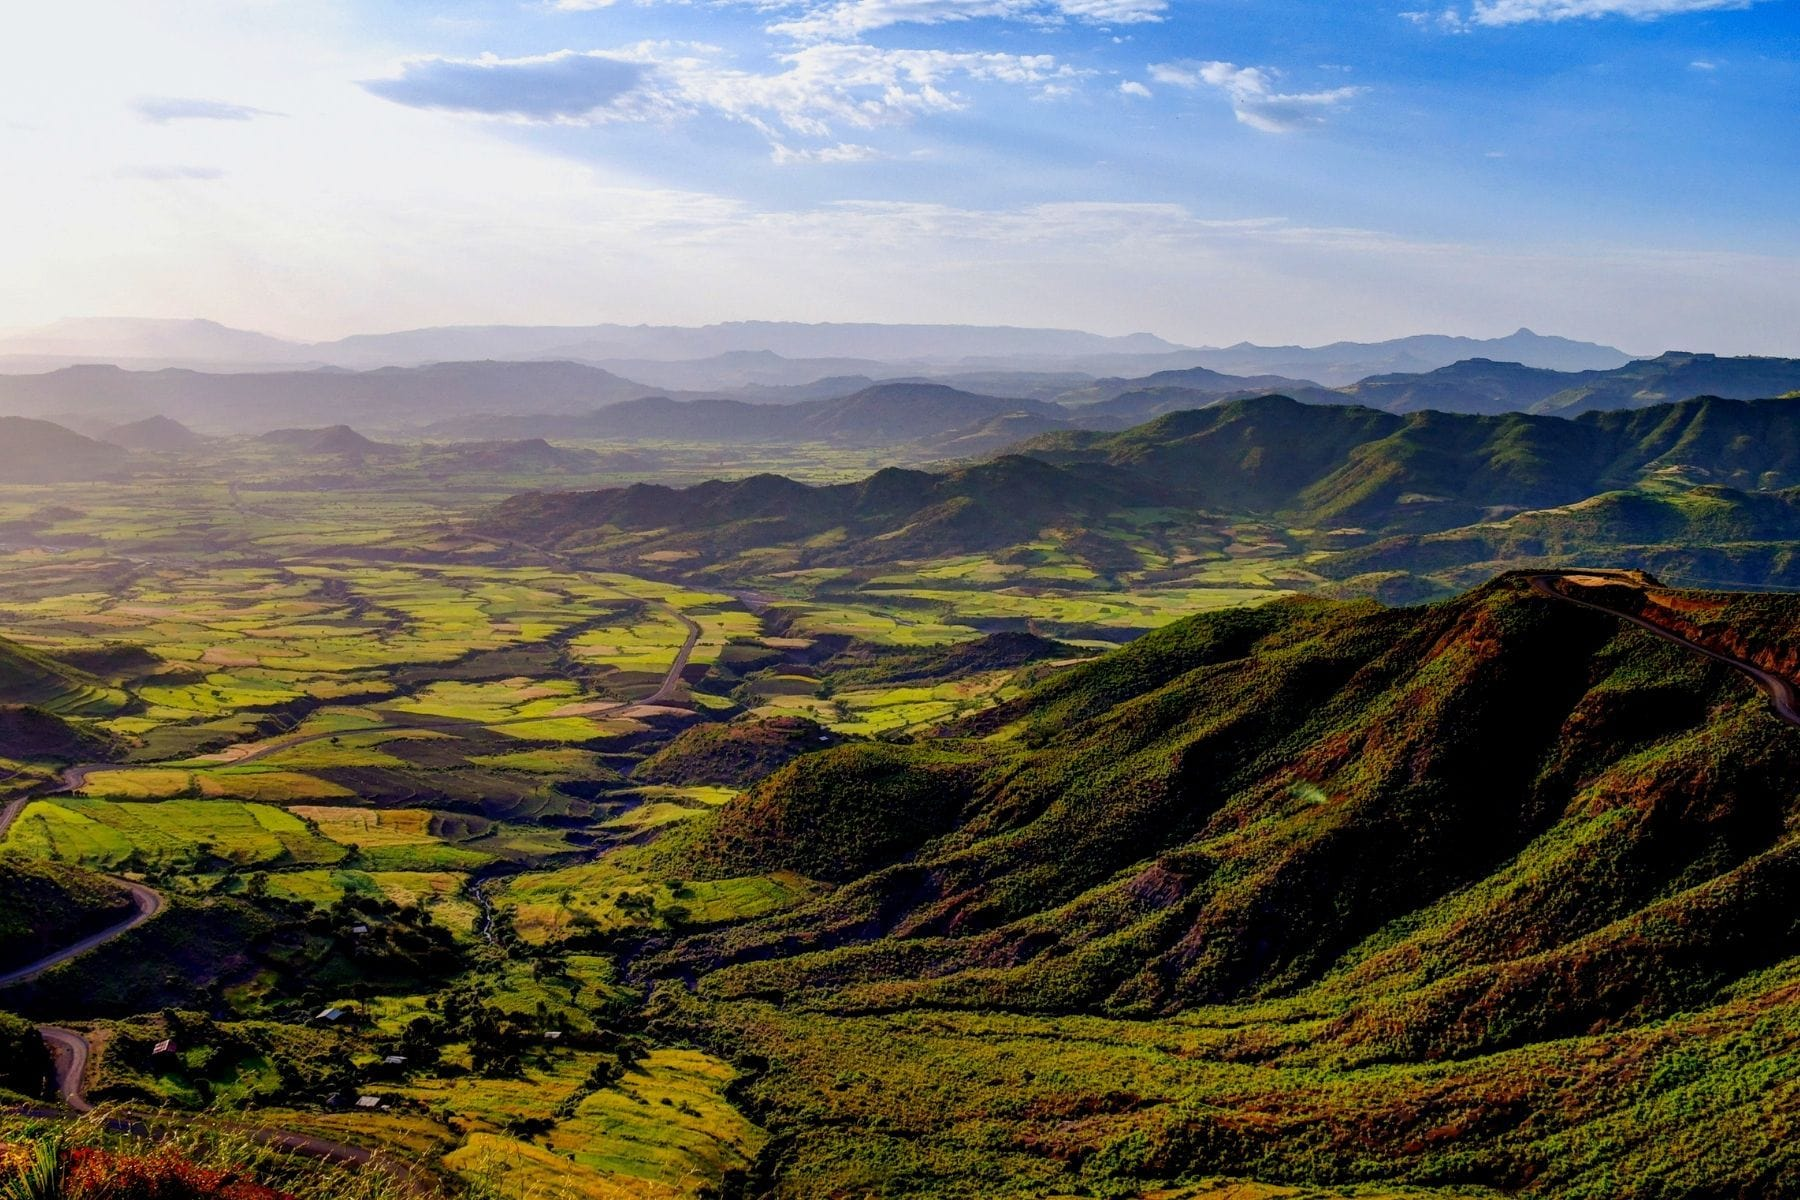 landscape of ethiopian hills and forest